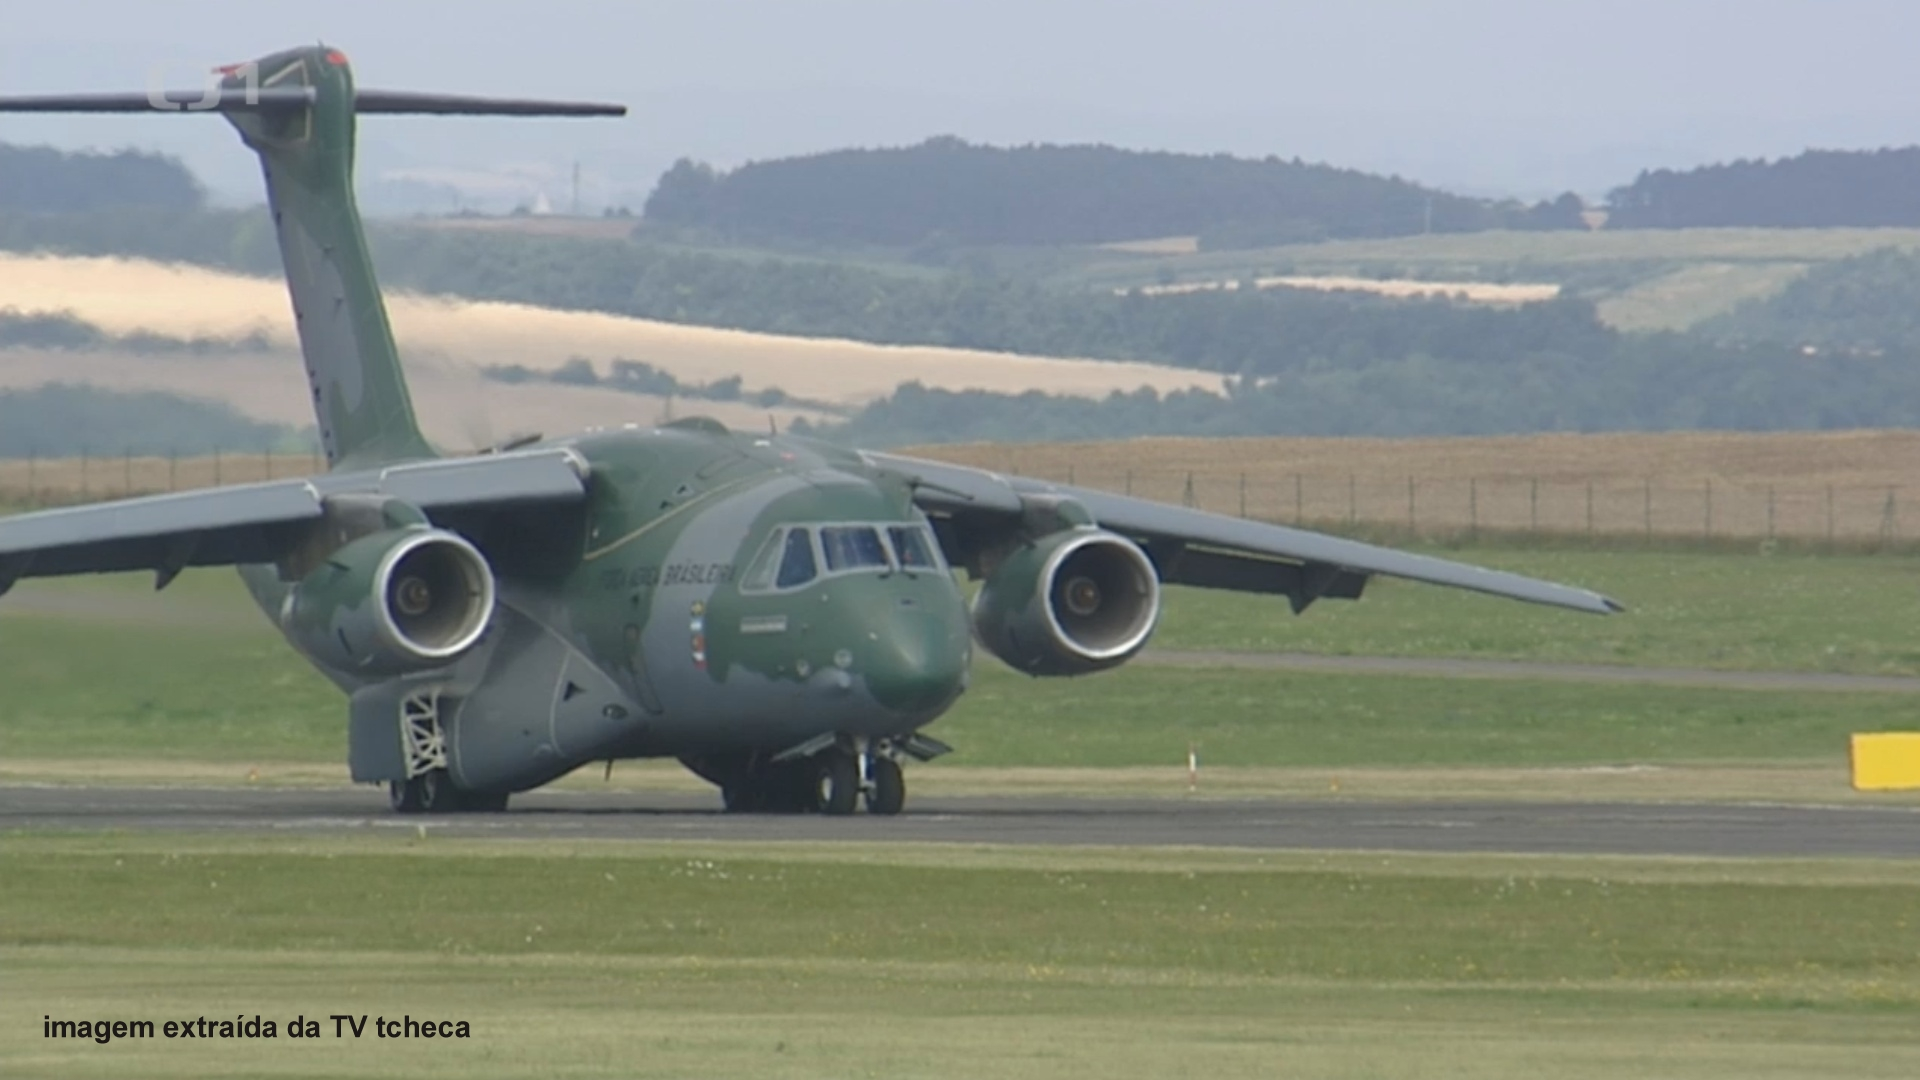 KC-390 foto TV tcheca03